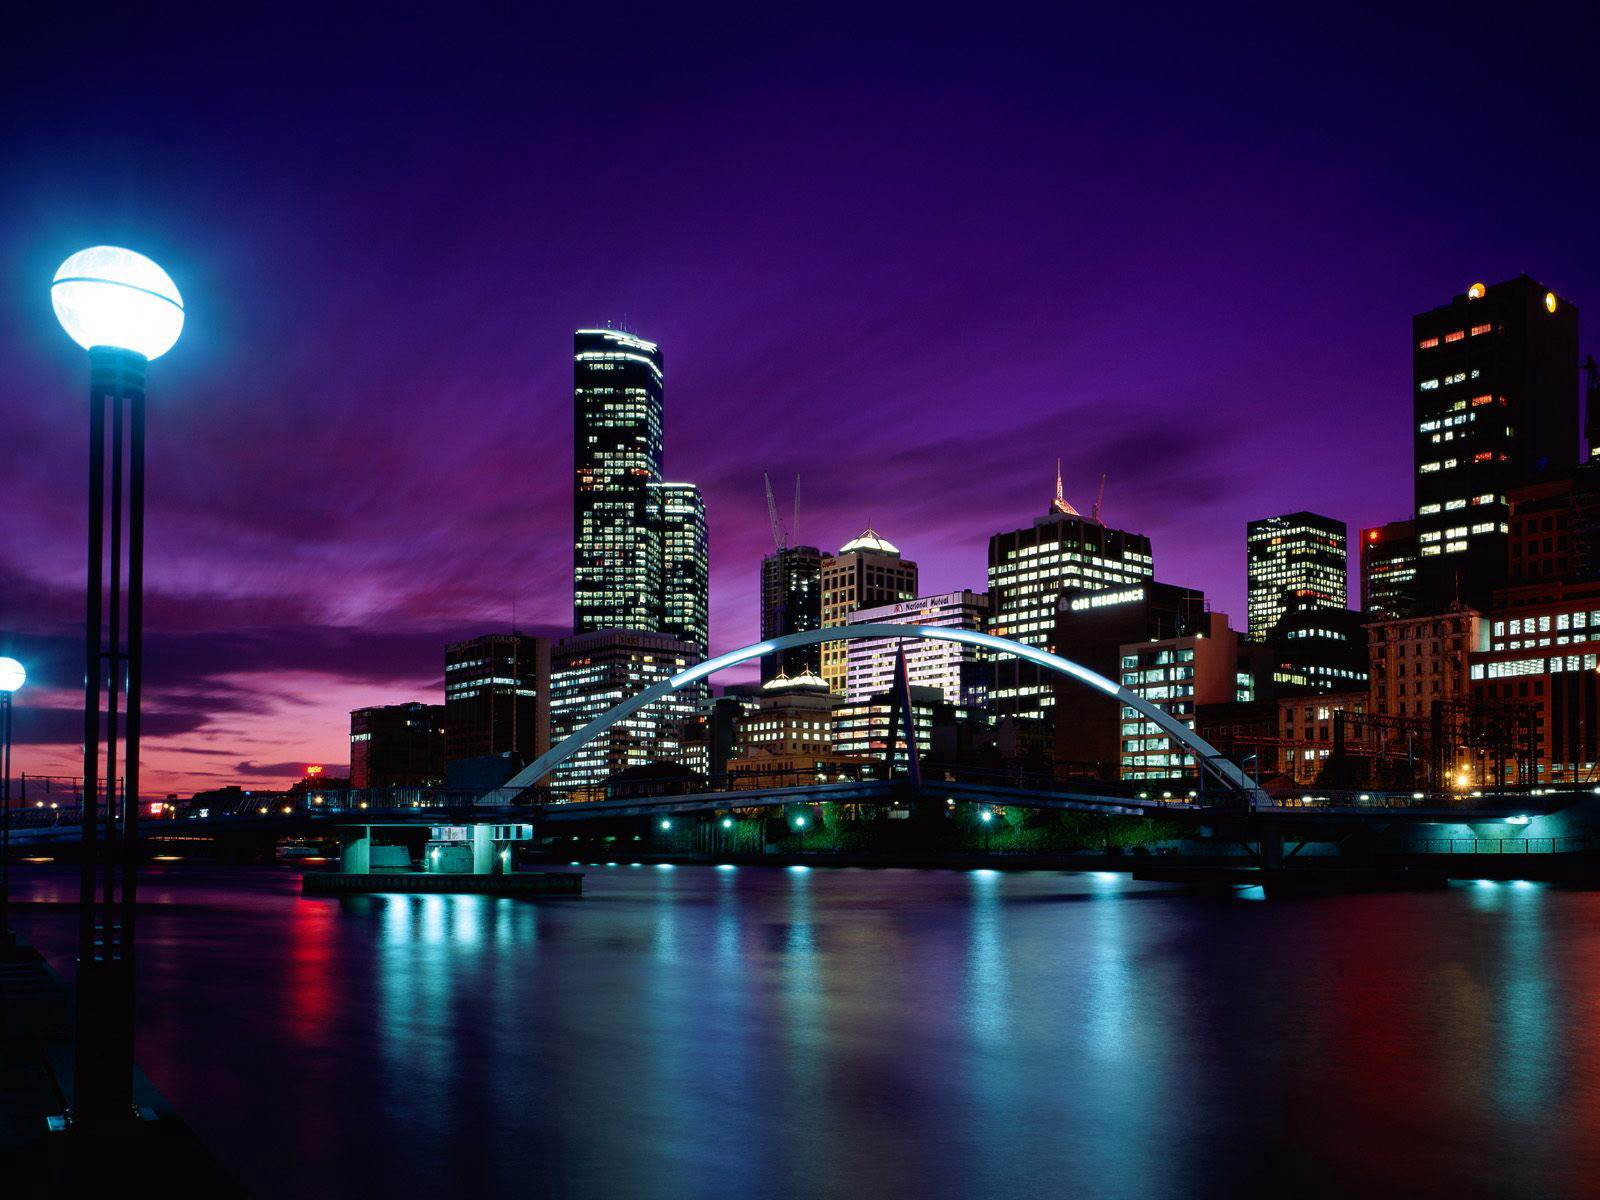 melbourne wallpapers, photos and desktop backgrounds up to K 1600x1200